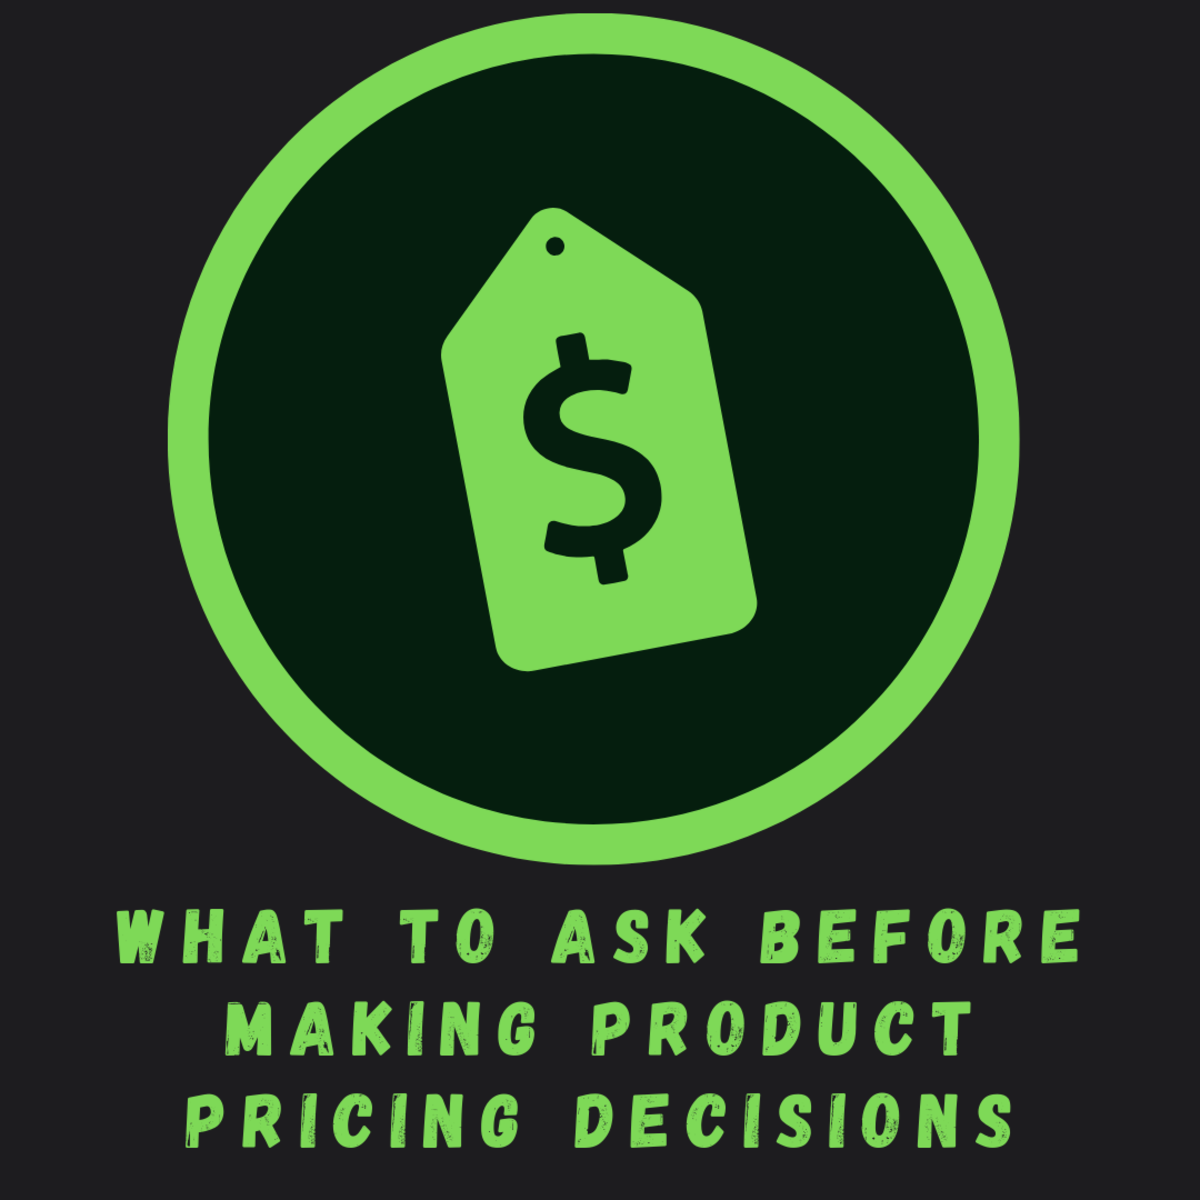 What to Ask Before Making Product Pricing Decisions